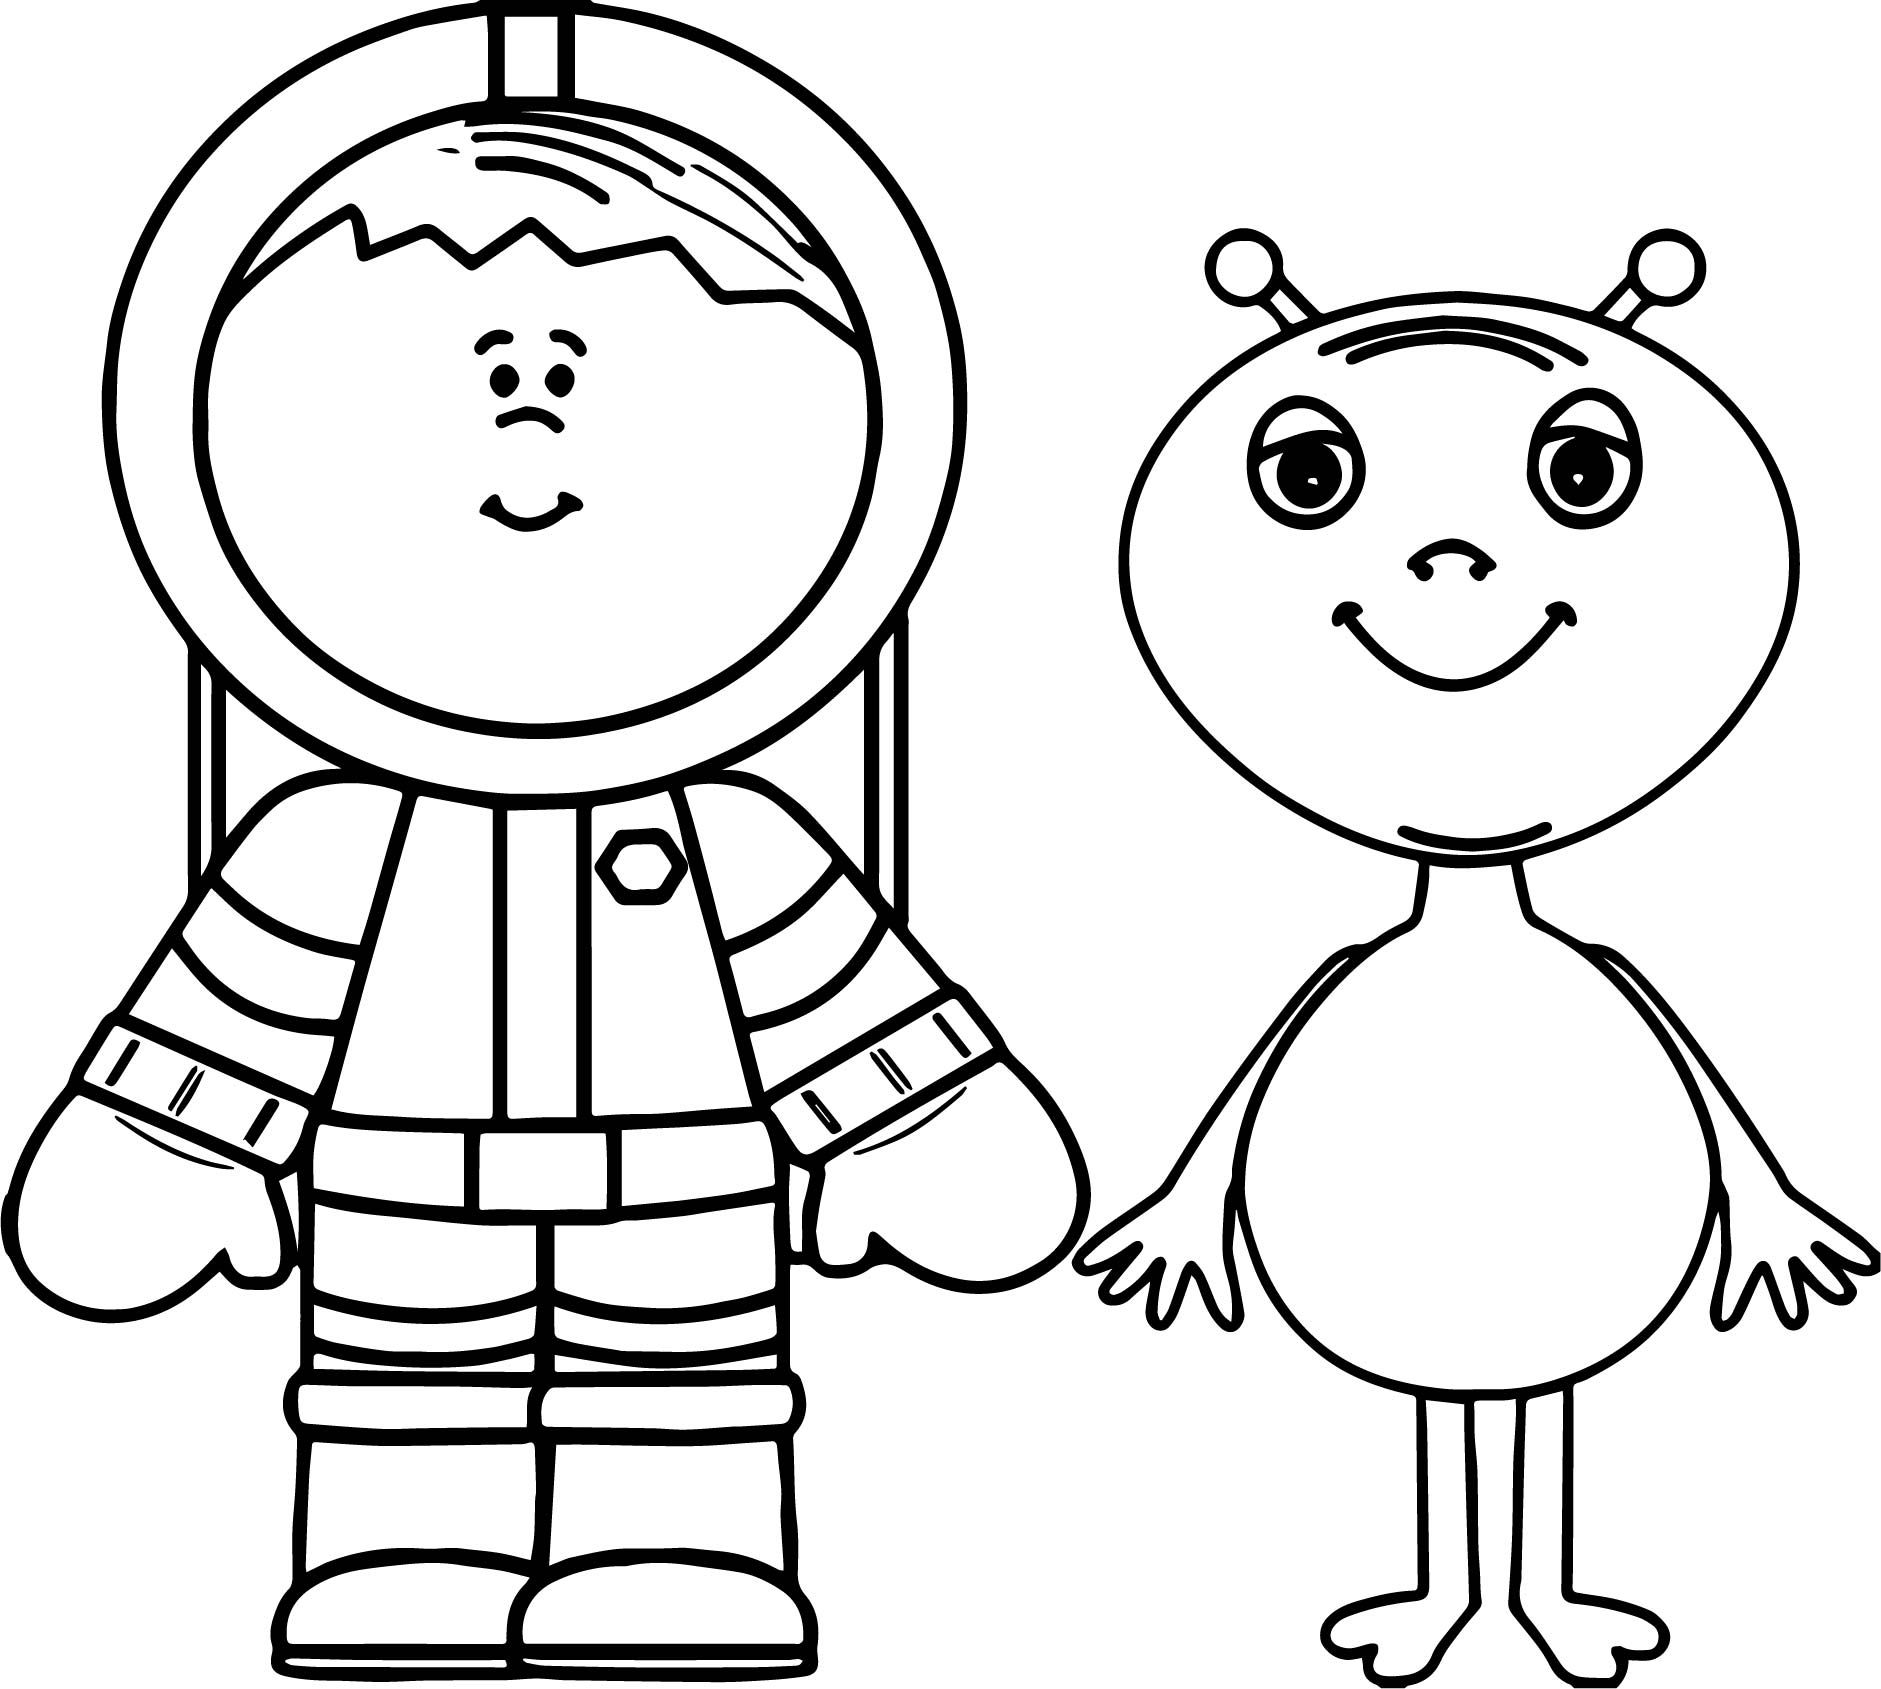 cool Alien And Astronout Coloring Page | Coloring pages ...